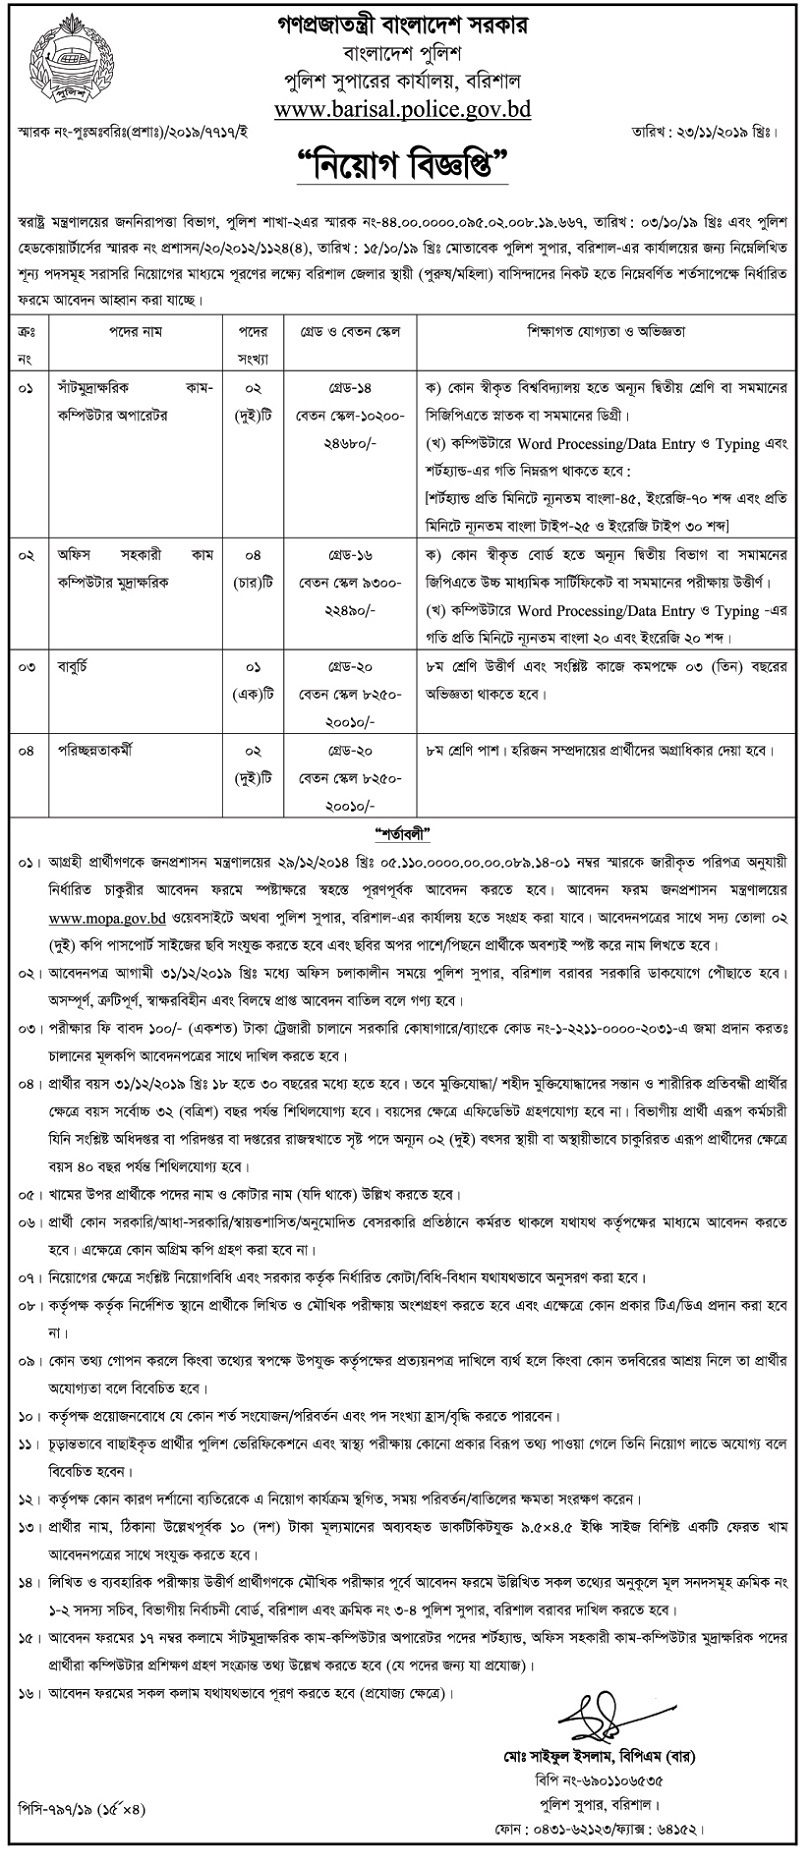 Bangladesh Police Super Office Job Circular 2019